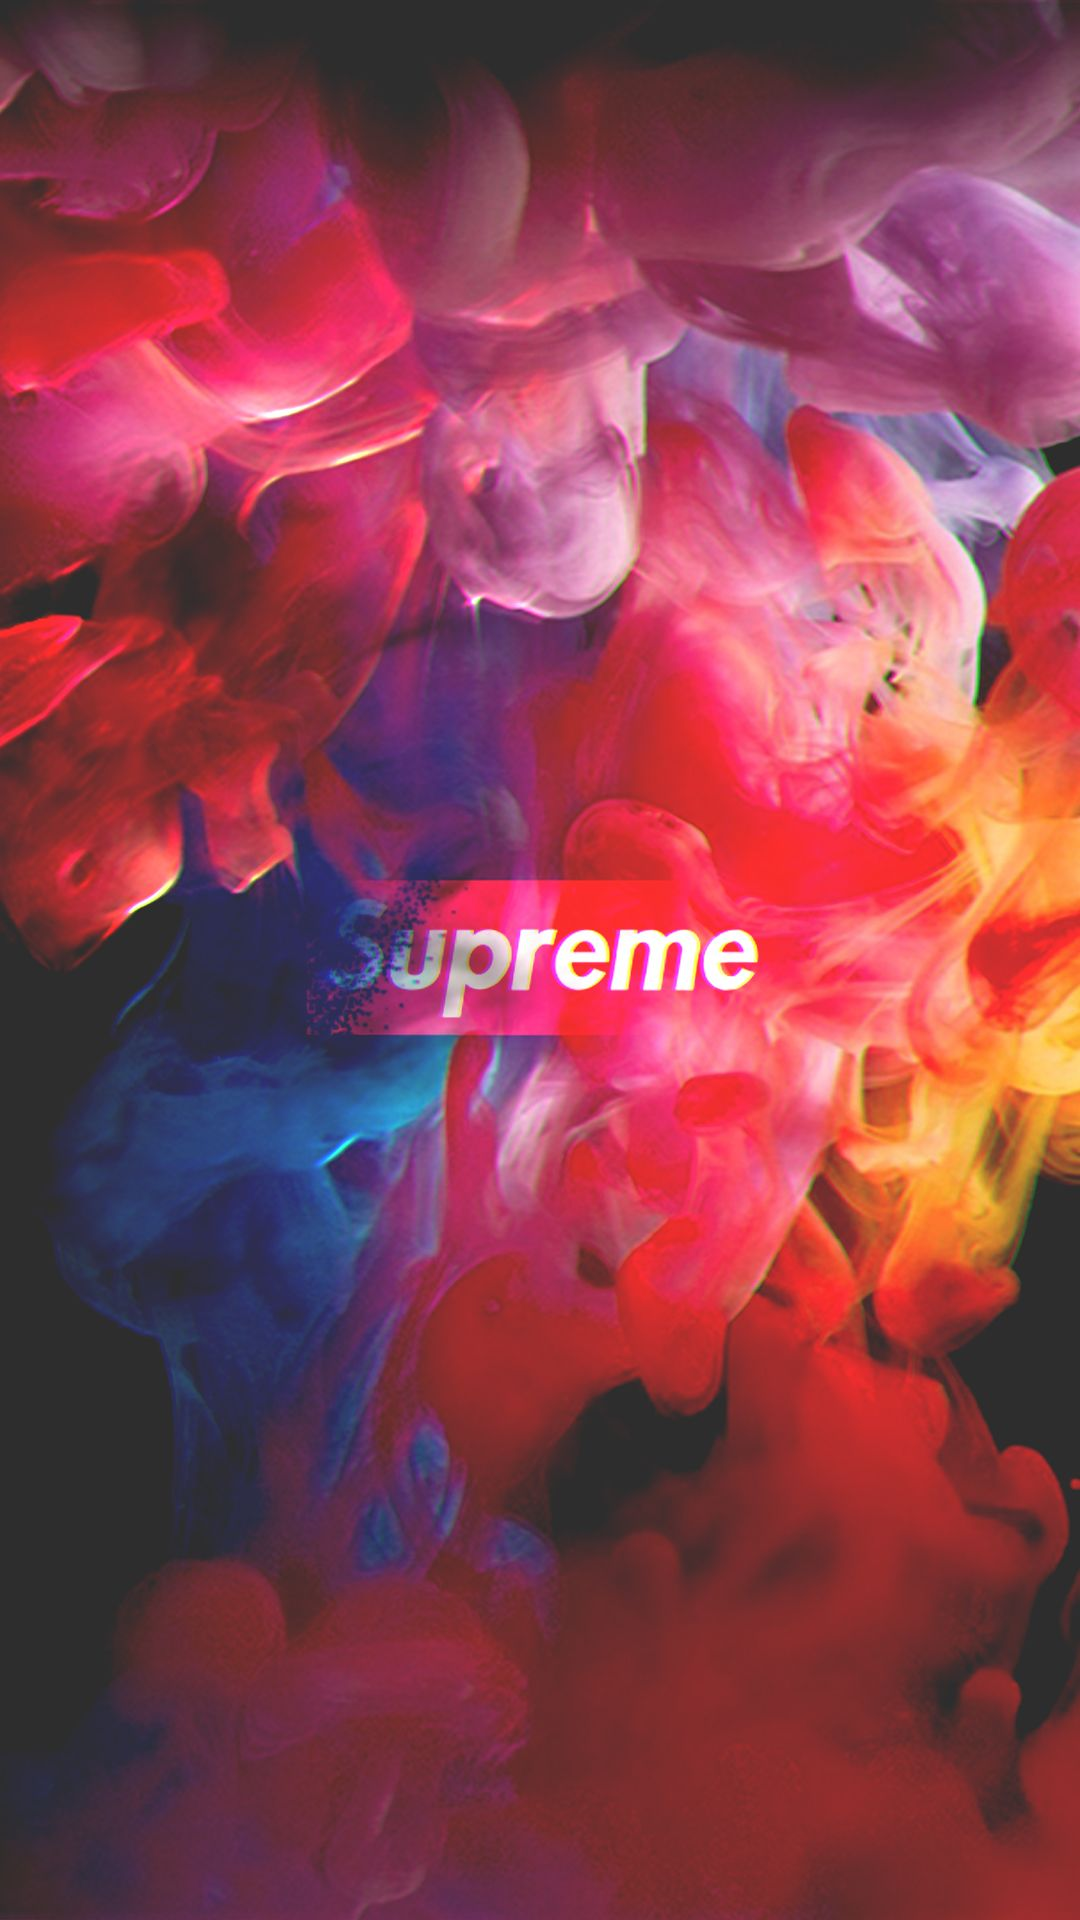 Cool Supreme Wallpapers iPhone XS,XR,7,84k,HD[Download